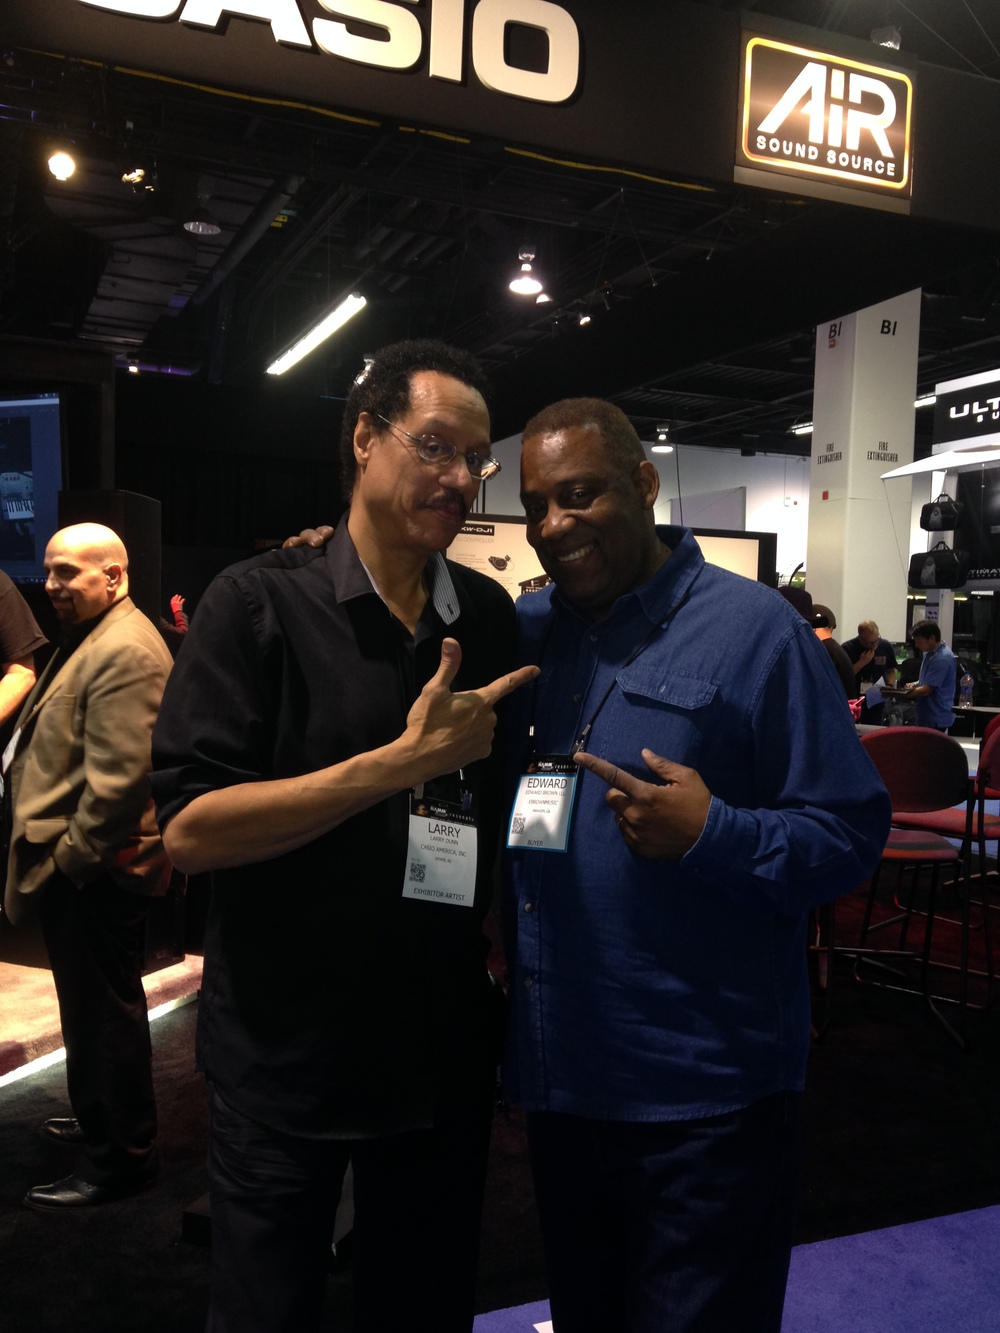 Hang-time with Larry Dunn